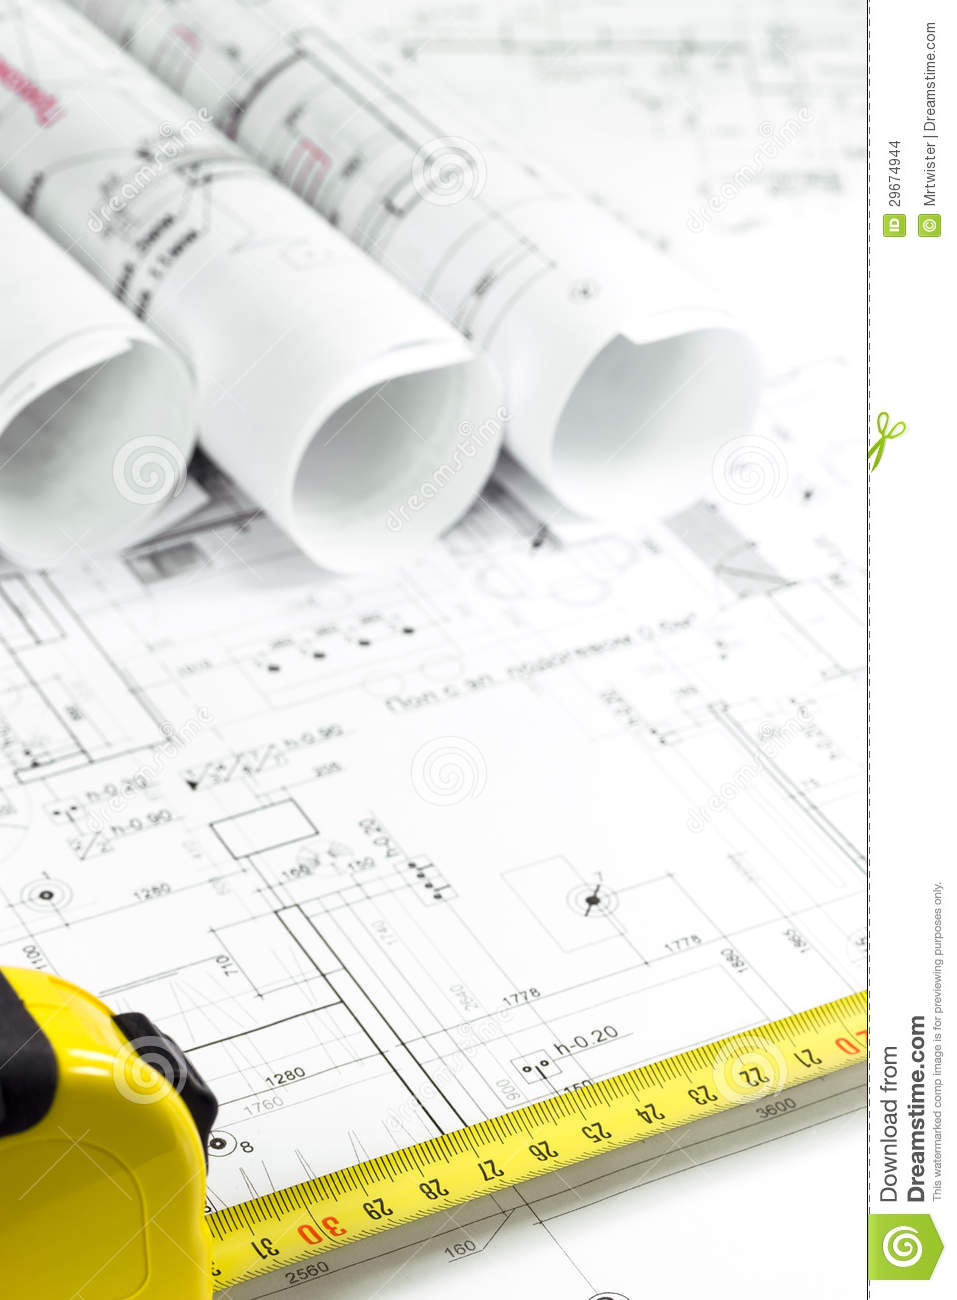 Blueprints And Tape Measure Stock Photo Image Of Dimensions Paper Measuring Diagram